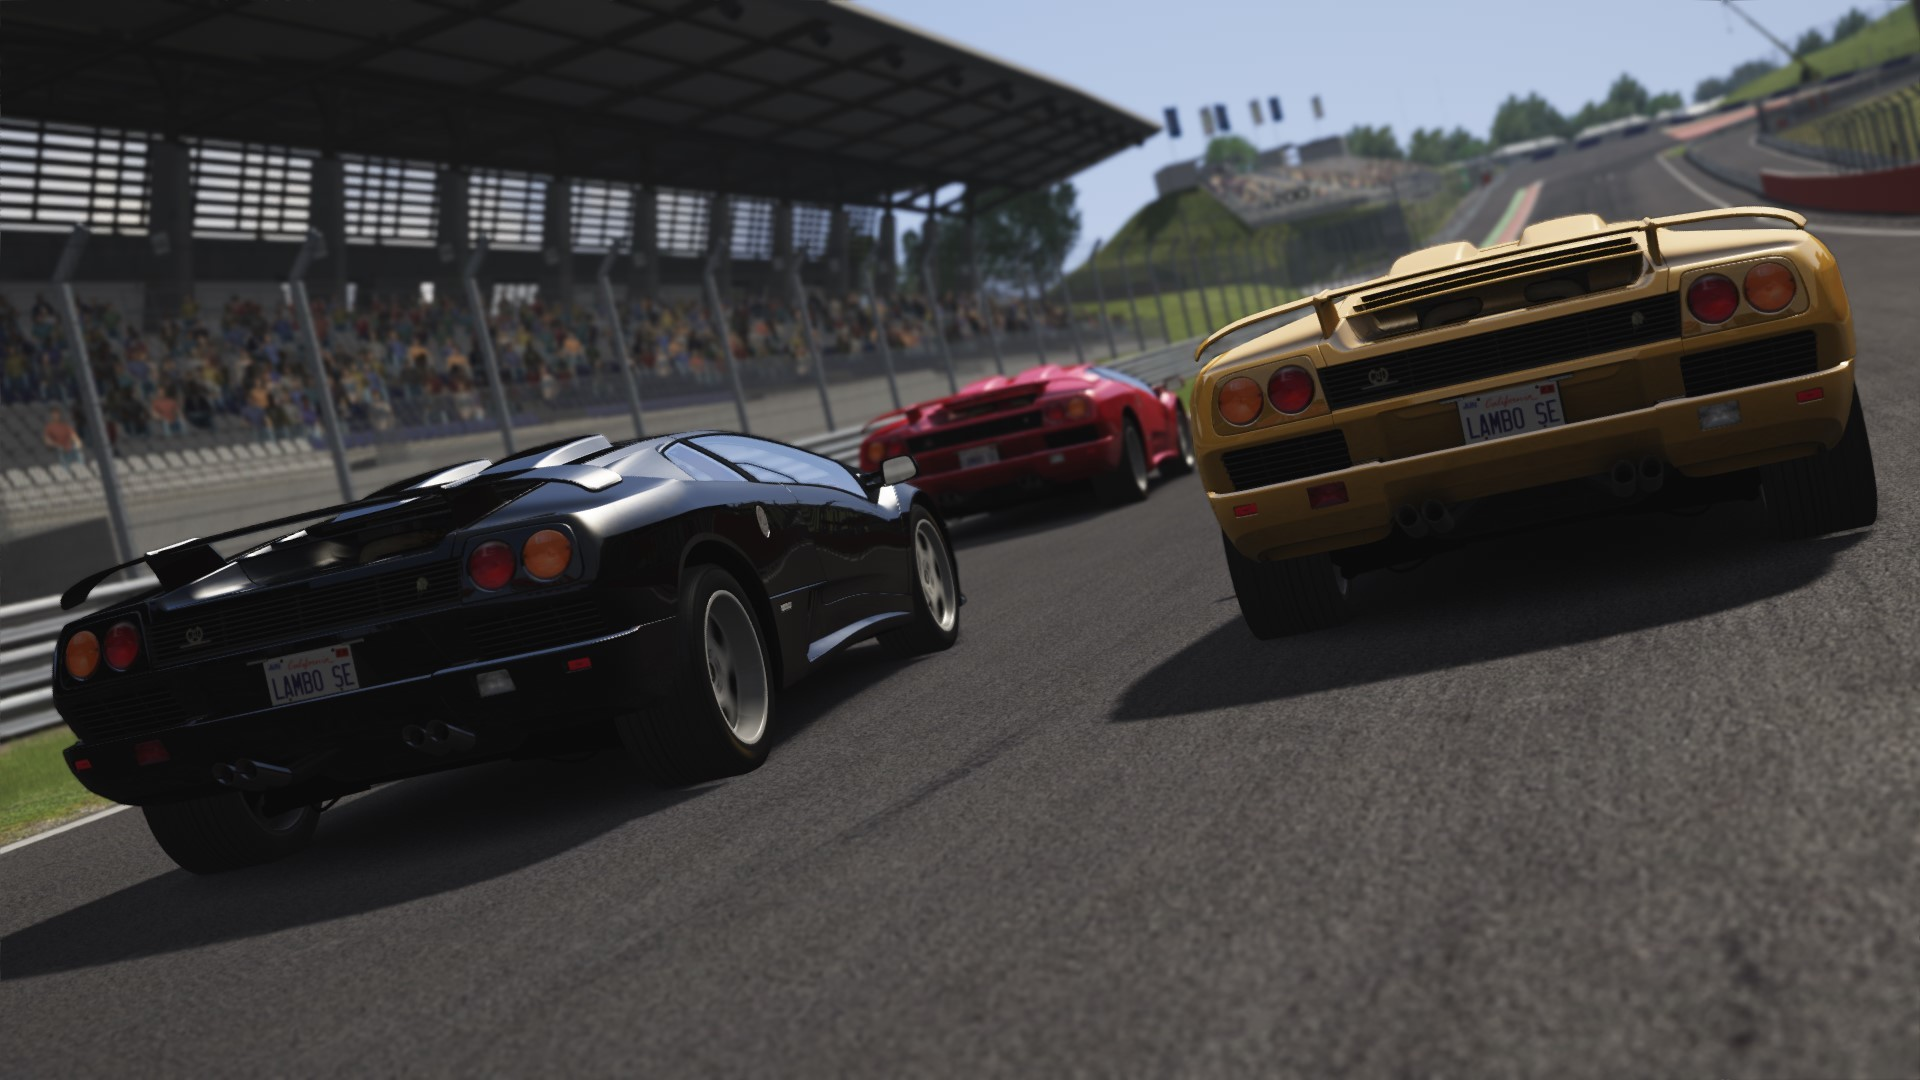 Daniel russo screenshot a3dr lambo diablo se30 ks red bull ring 4 6 117 20 58 22